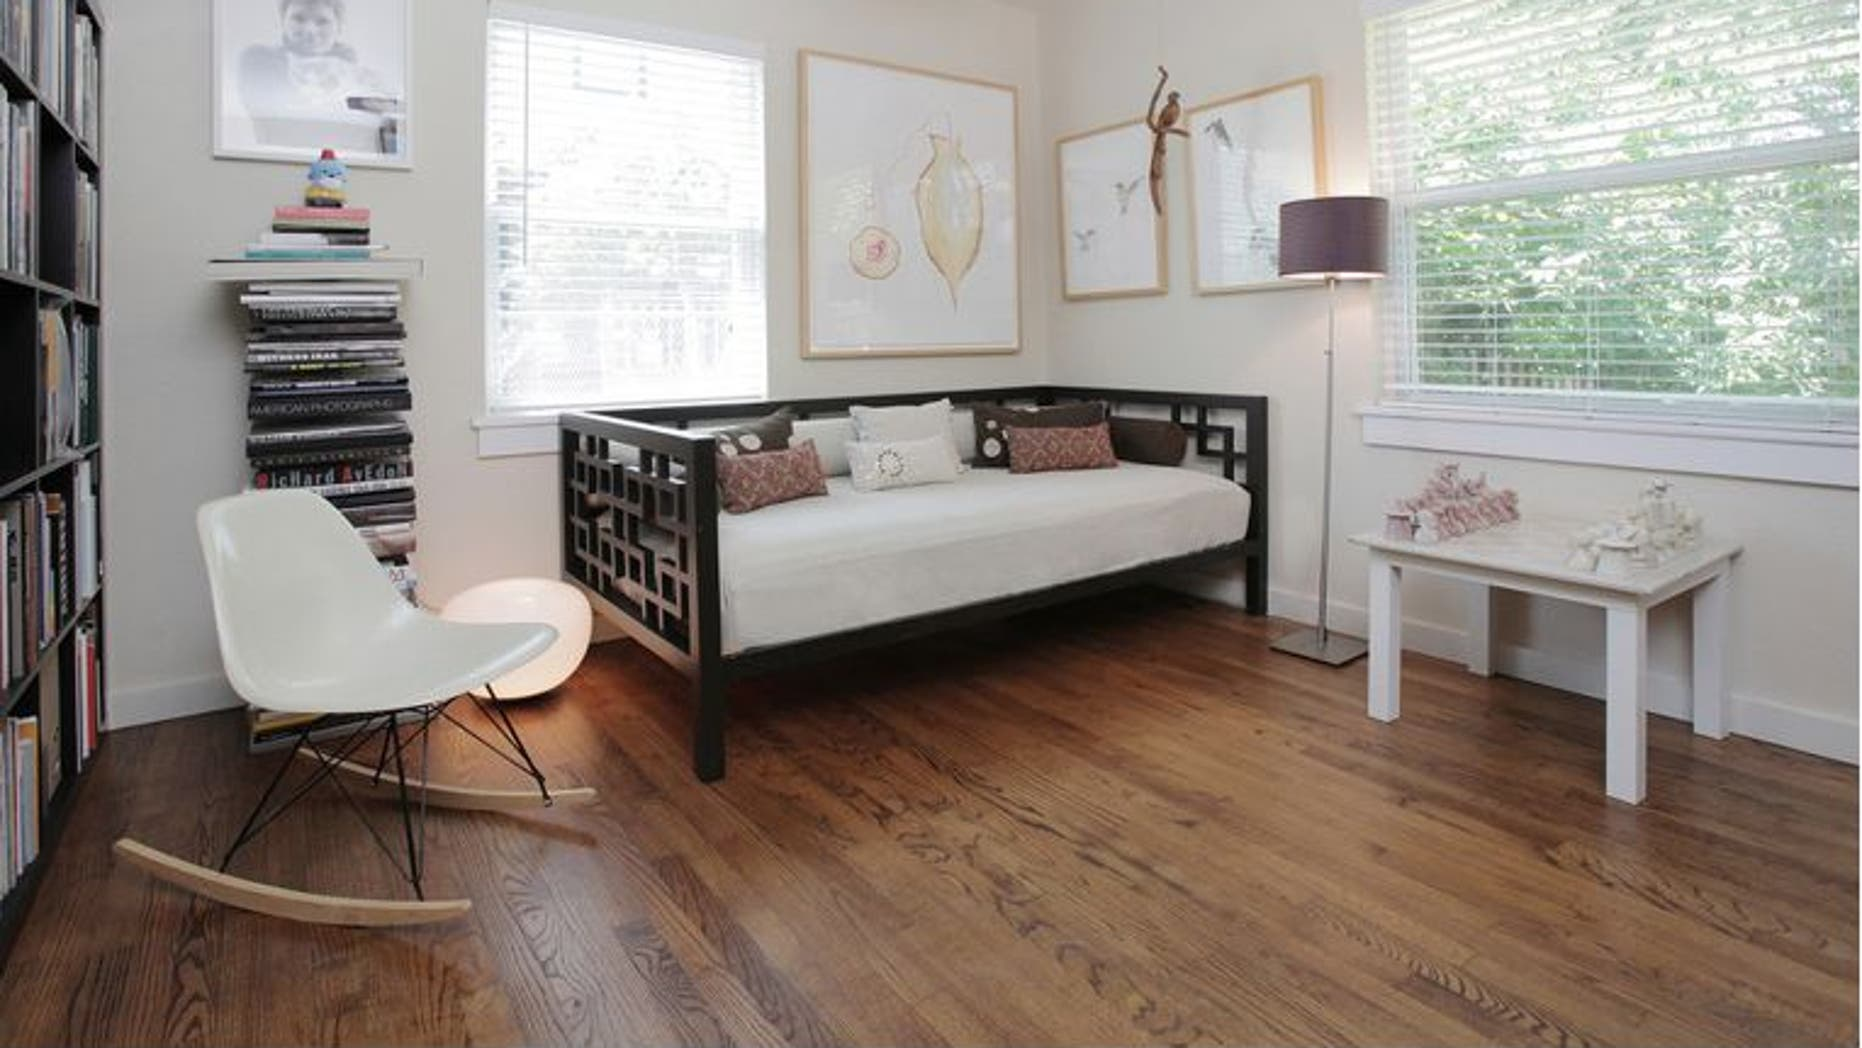 Shopping For A Sleeper Sofa Is More Than Just About Picking A Look You  Like. Thatu0027s Because There Are Several Types Of Mattresses And  Configurations And ...